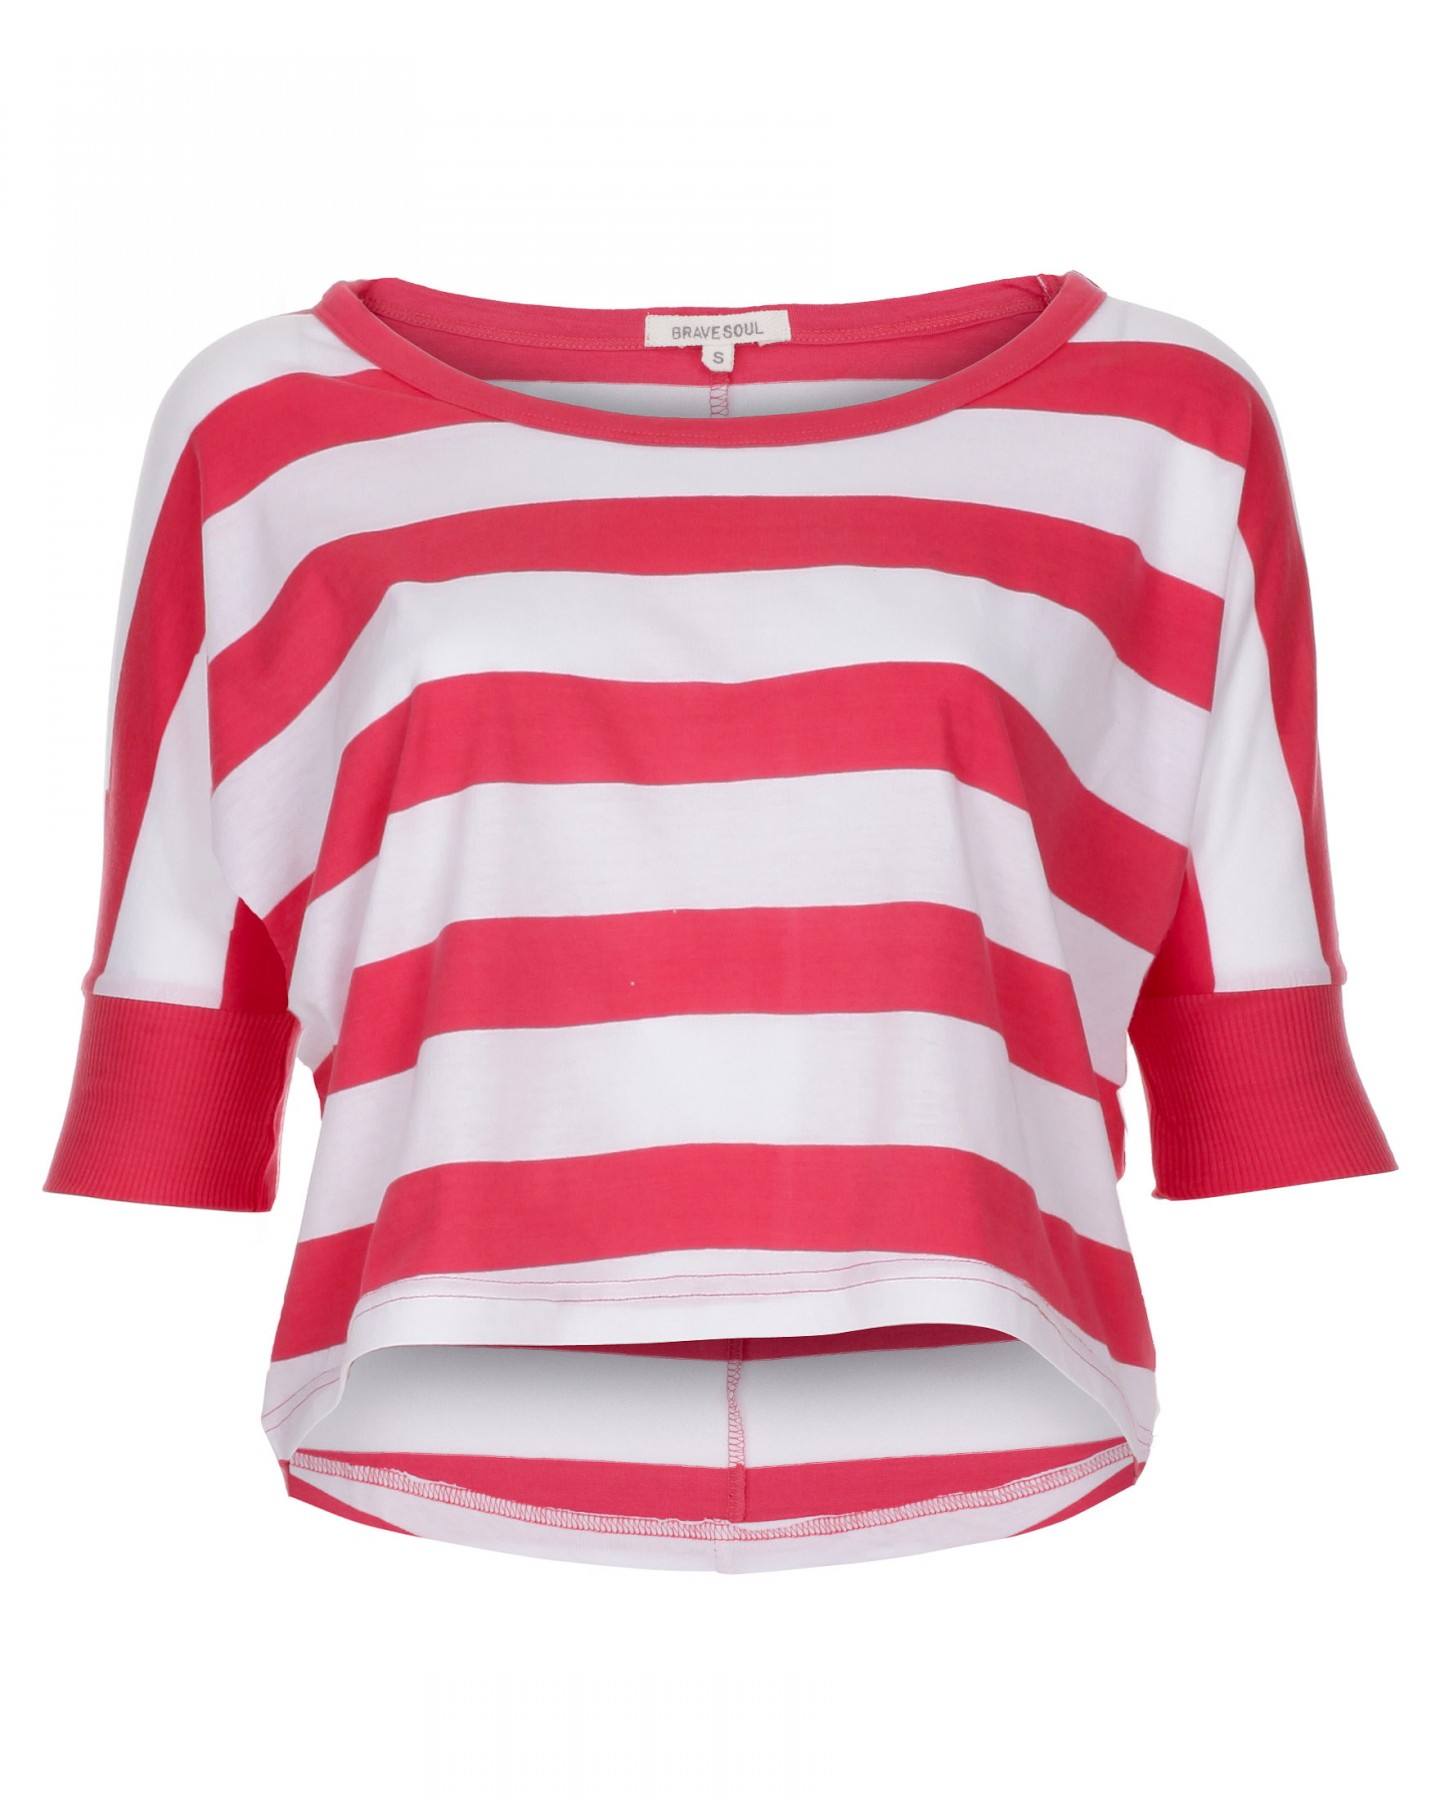 Blue inc womens cropped striped t shirt red ebay for Red blue striped shirt